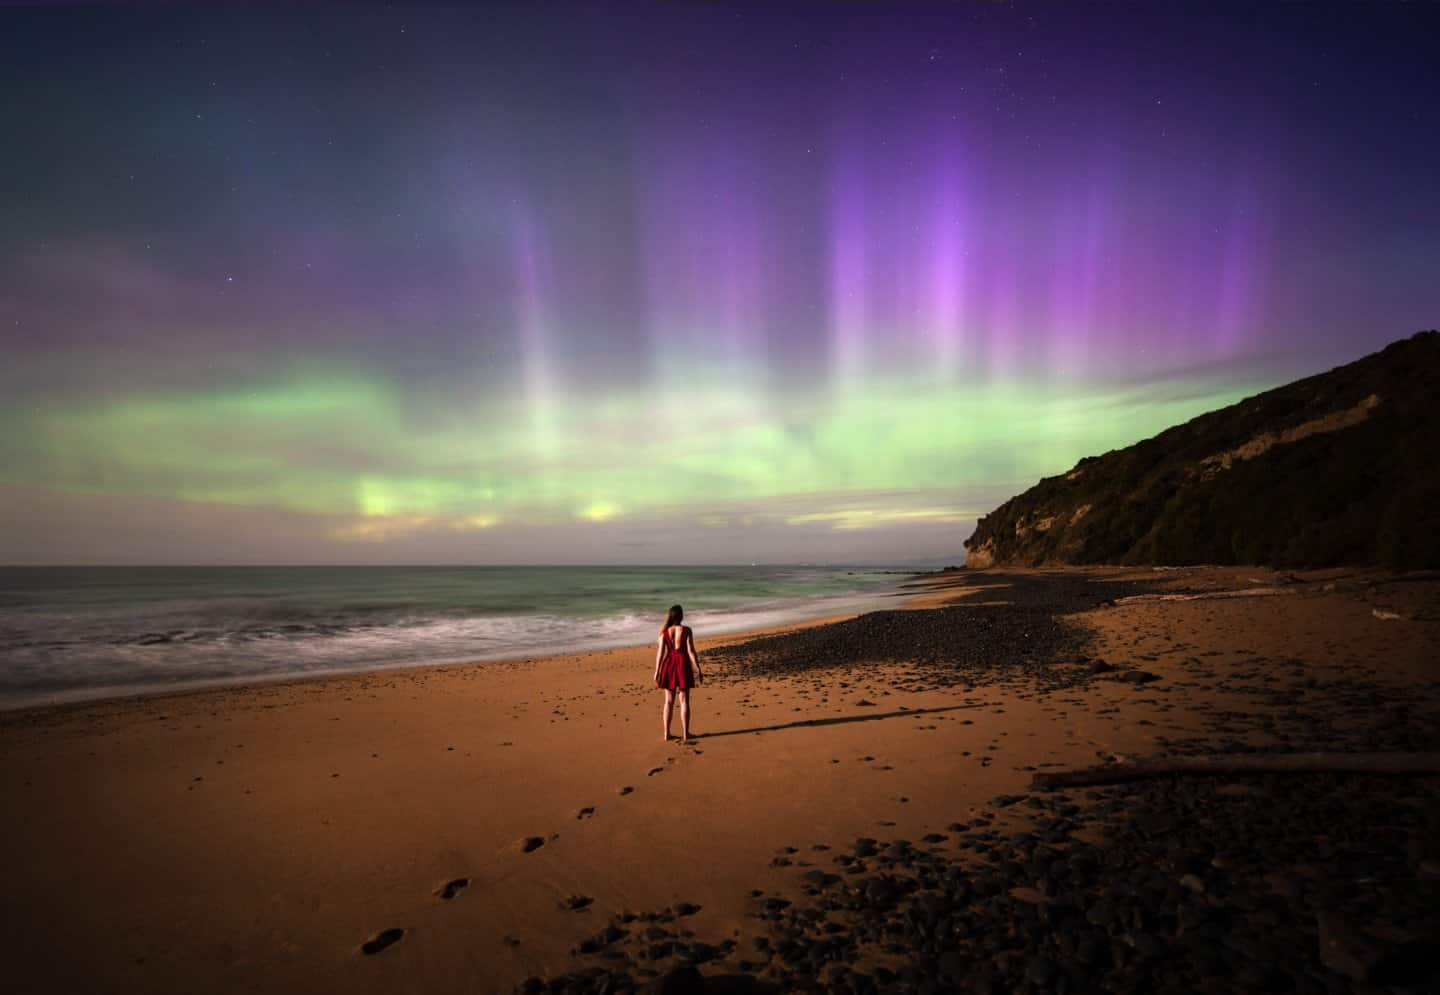 On a beach in New Zealand witnessing the rare Aurora Australis, aka Southern Lights, on a moonlit night.